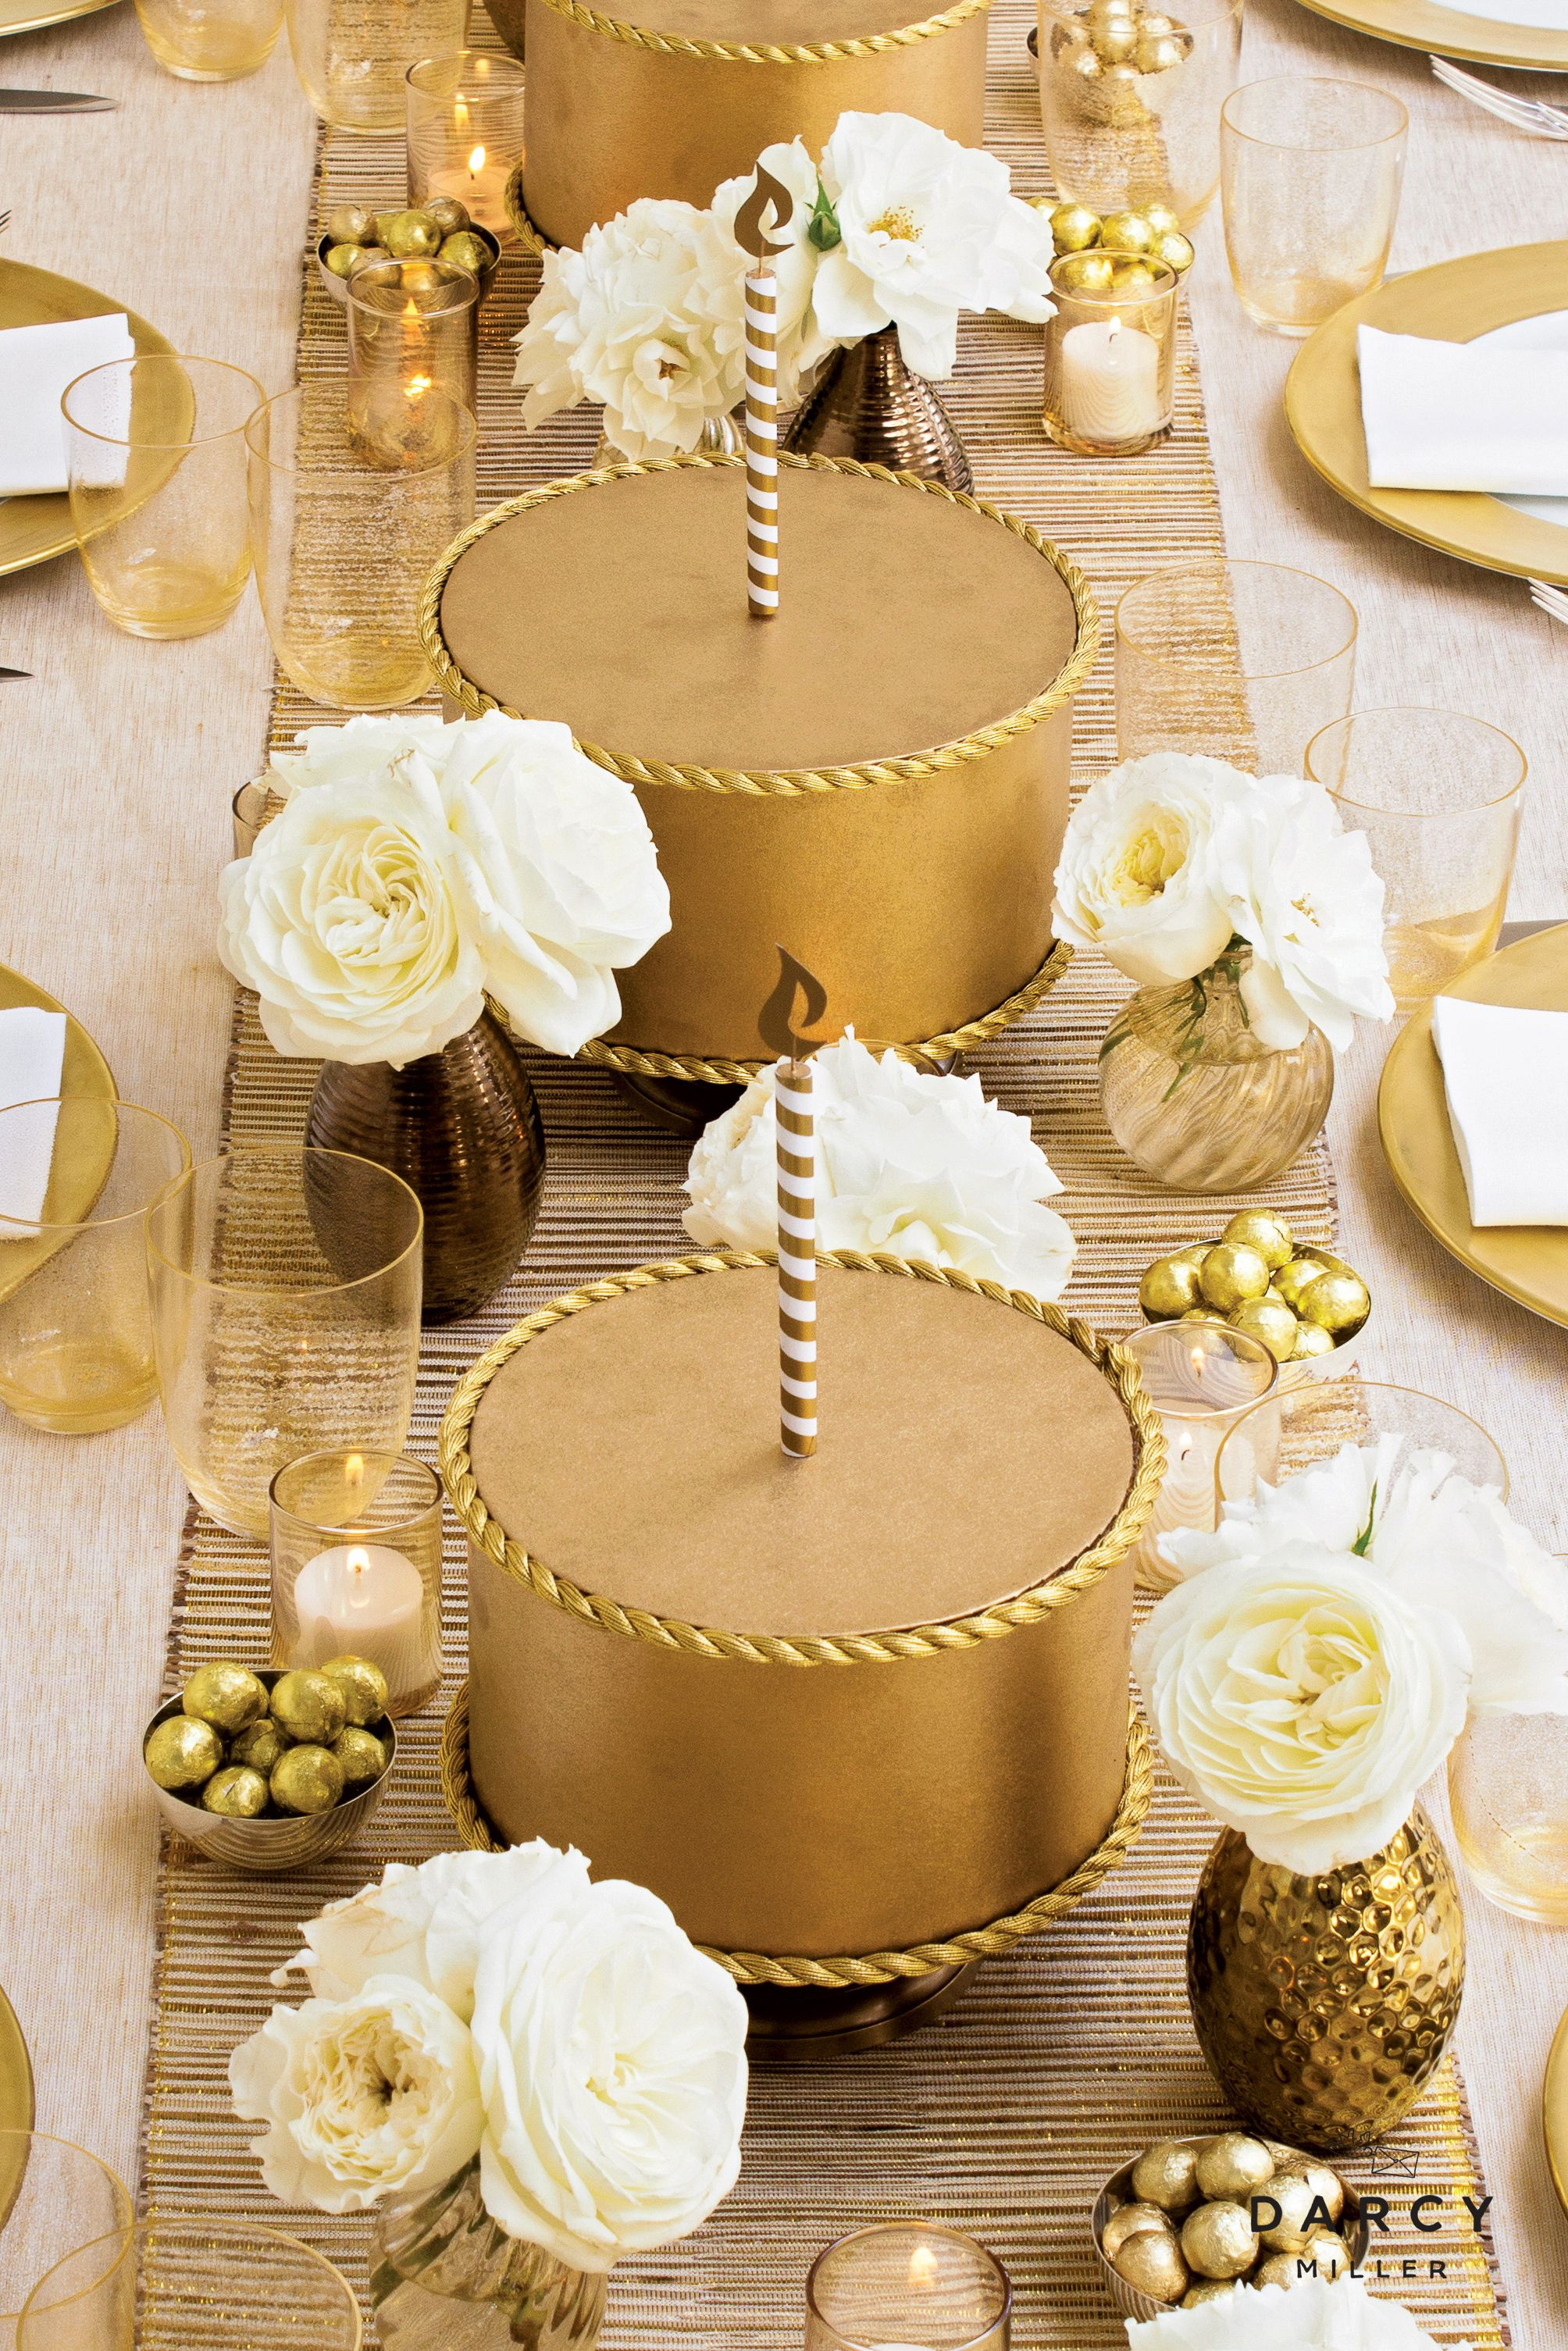 Fake The Cake Centerpieces Darcy Miller Designs Cake Centerpieces Fake Cake Cake